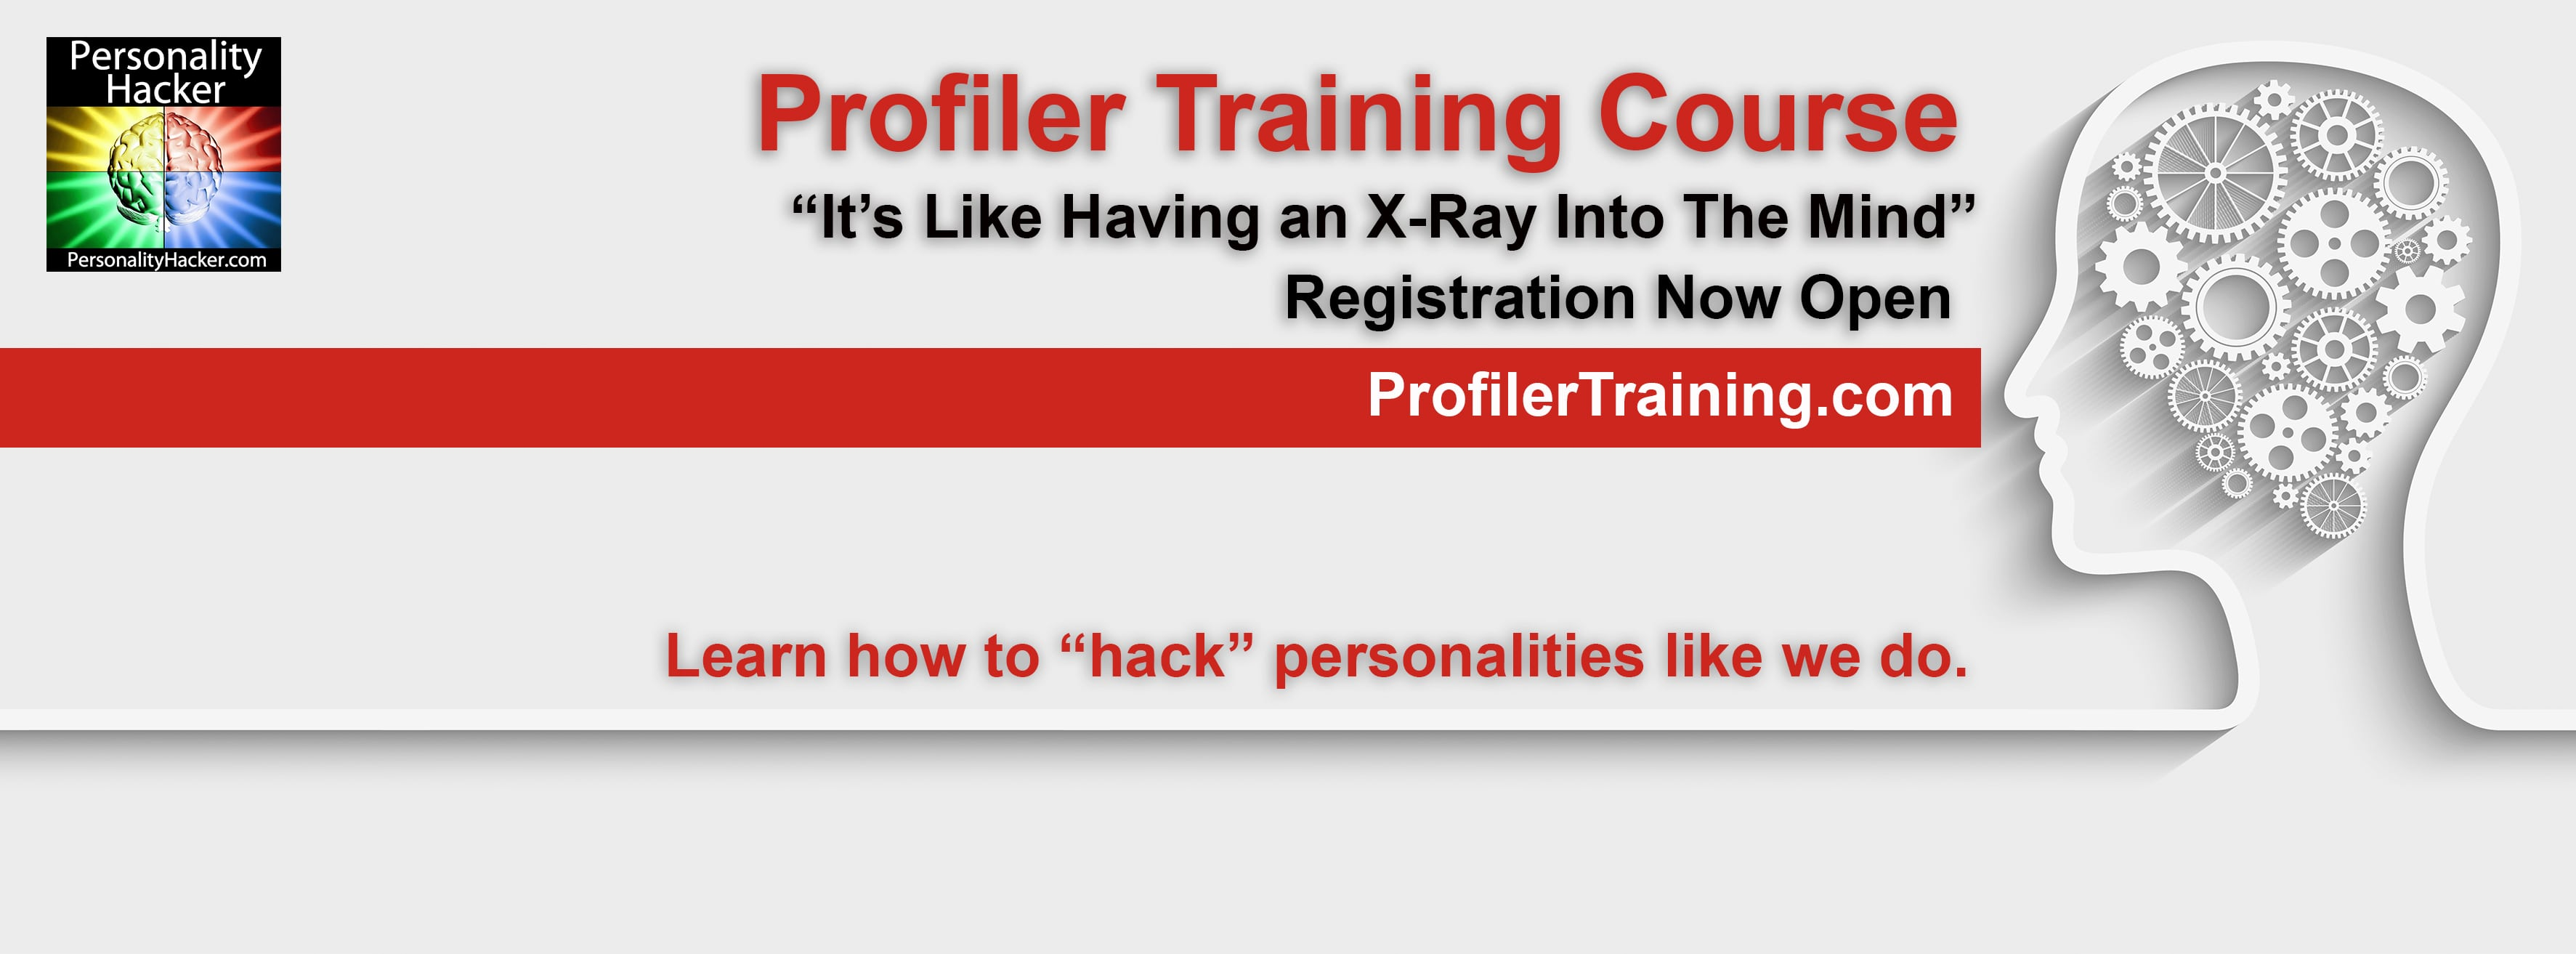 personalityhacker-com-profiler-training-fb-banner-2016-regsitration-open